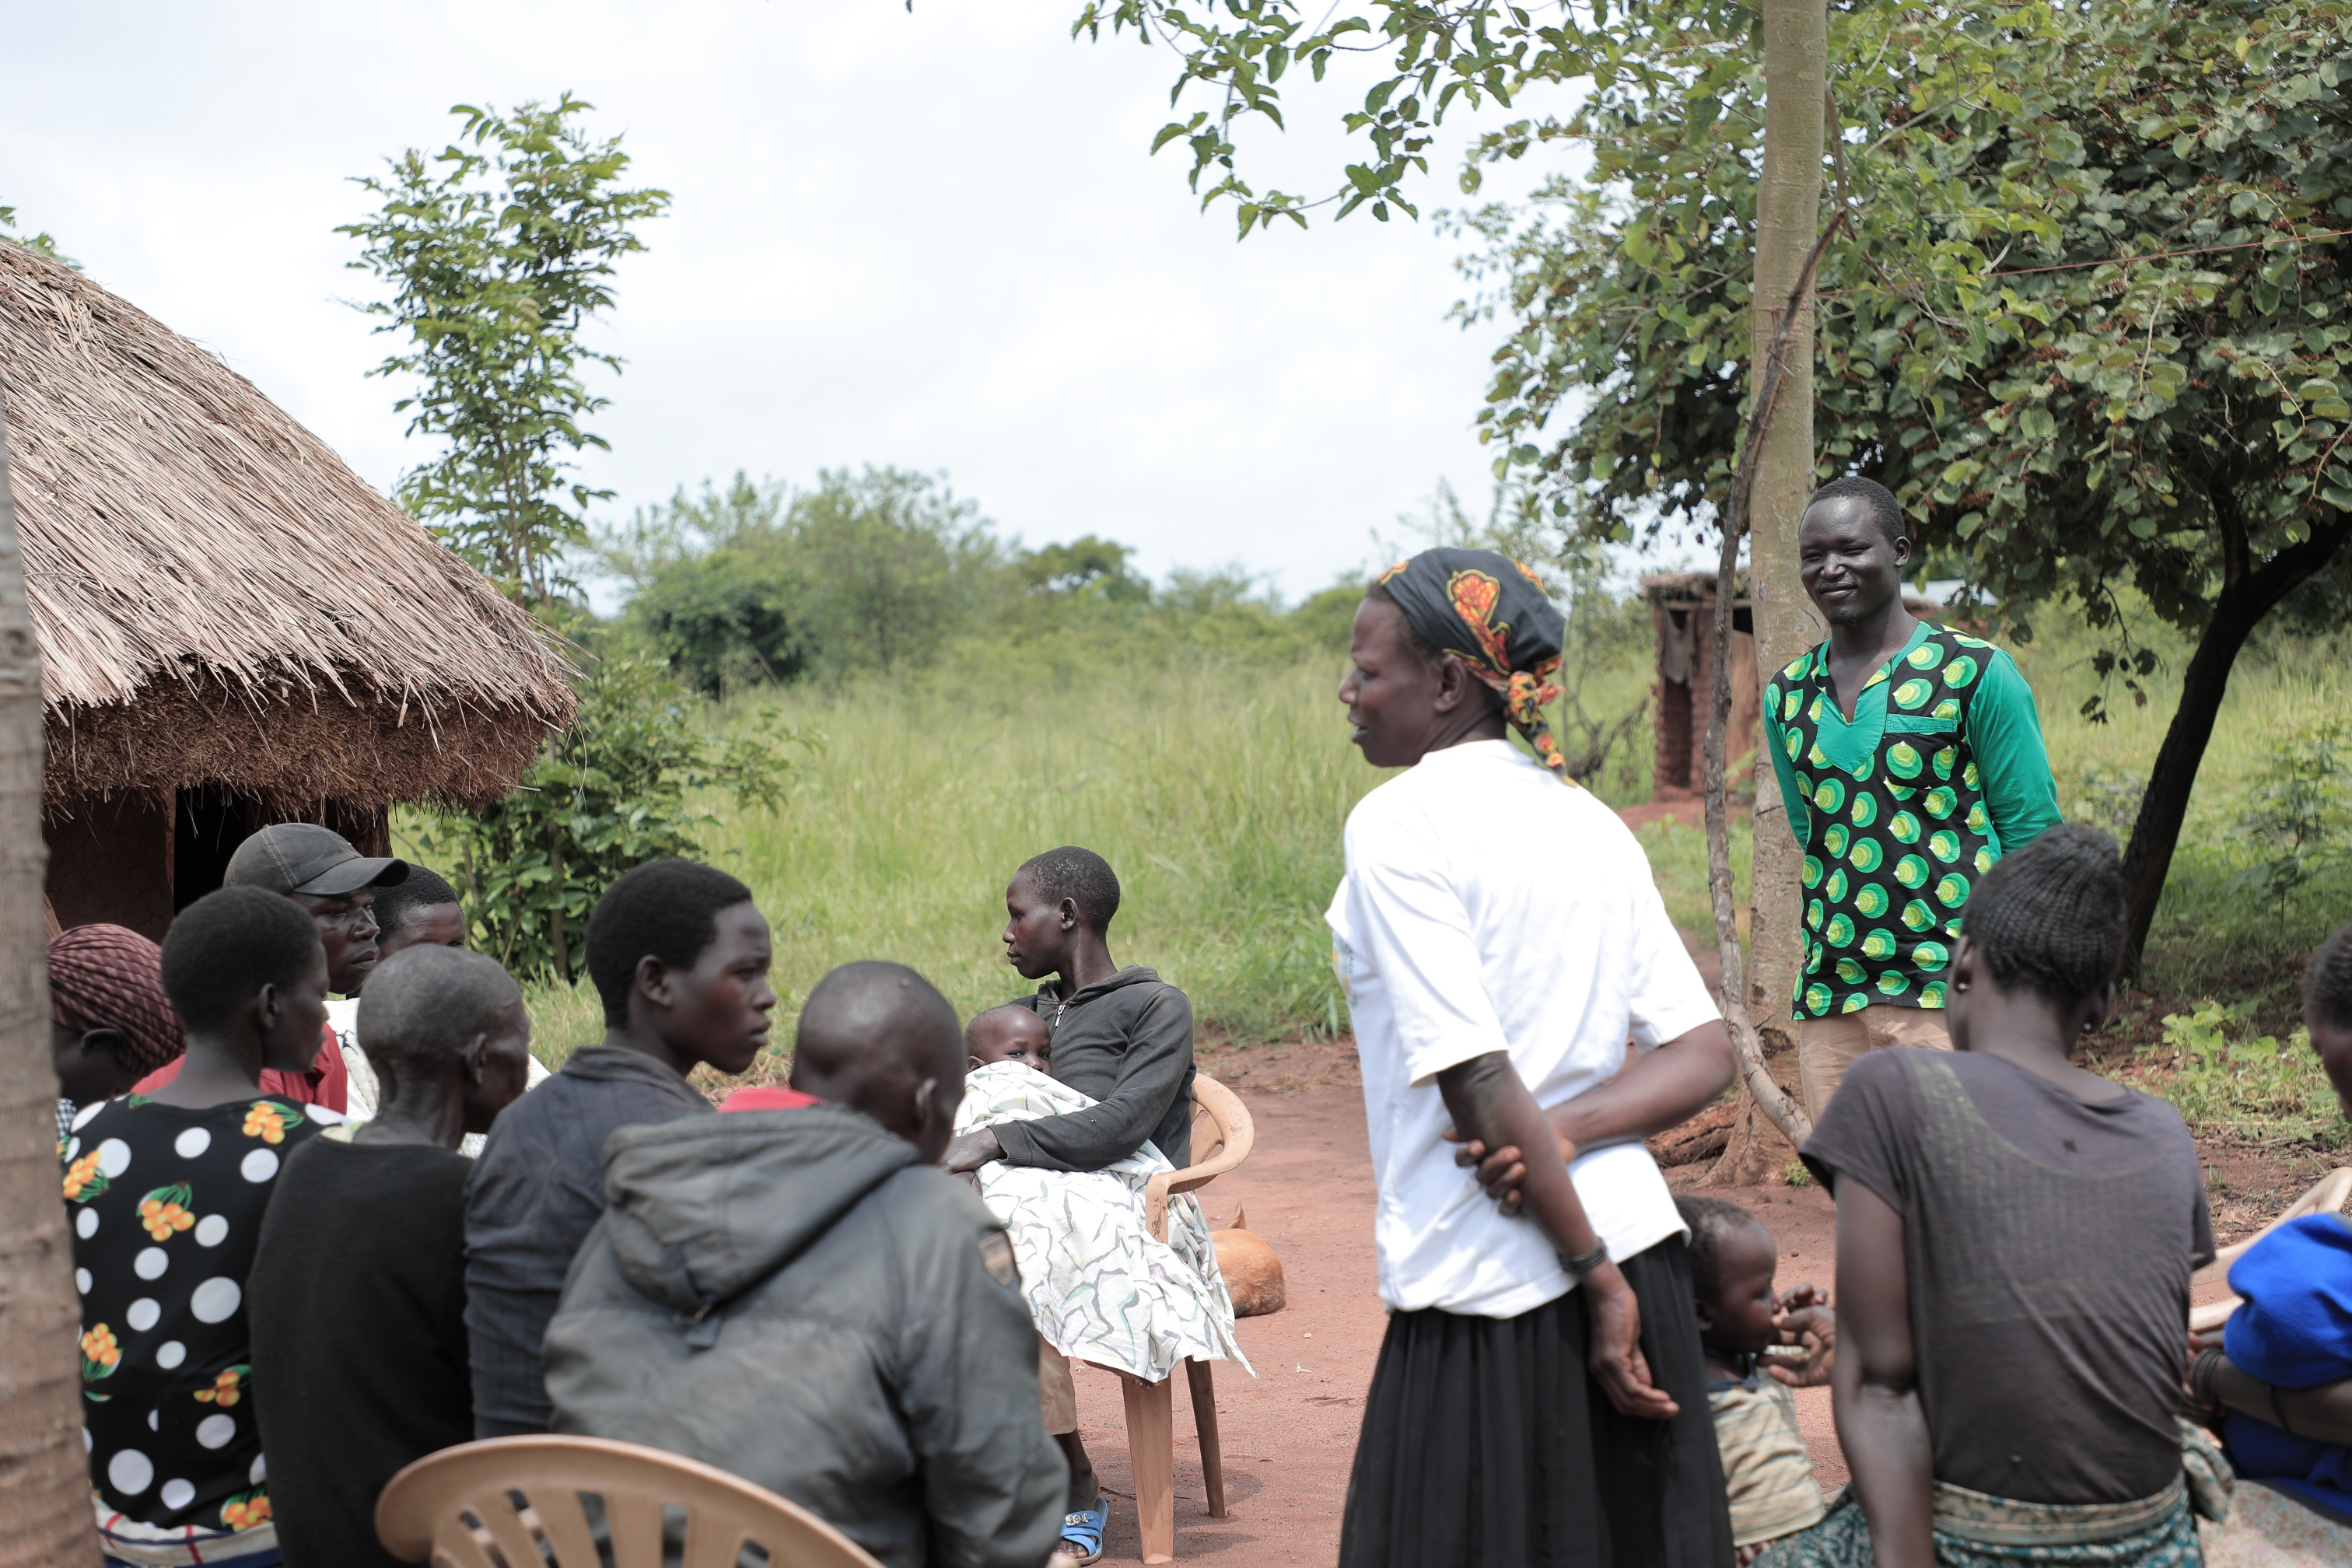 Photo of a group of Ugandans engaging in a workshop with a health worker.